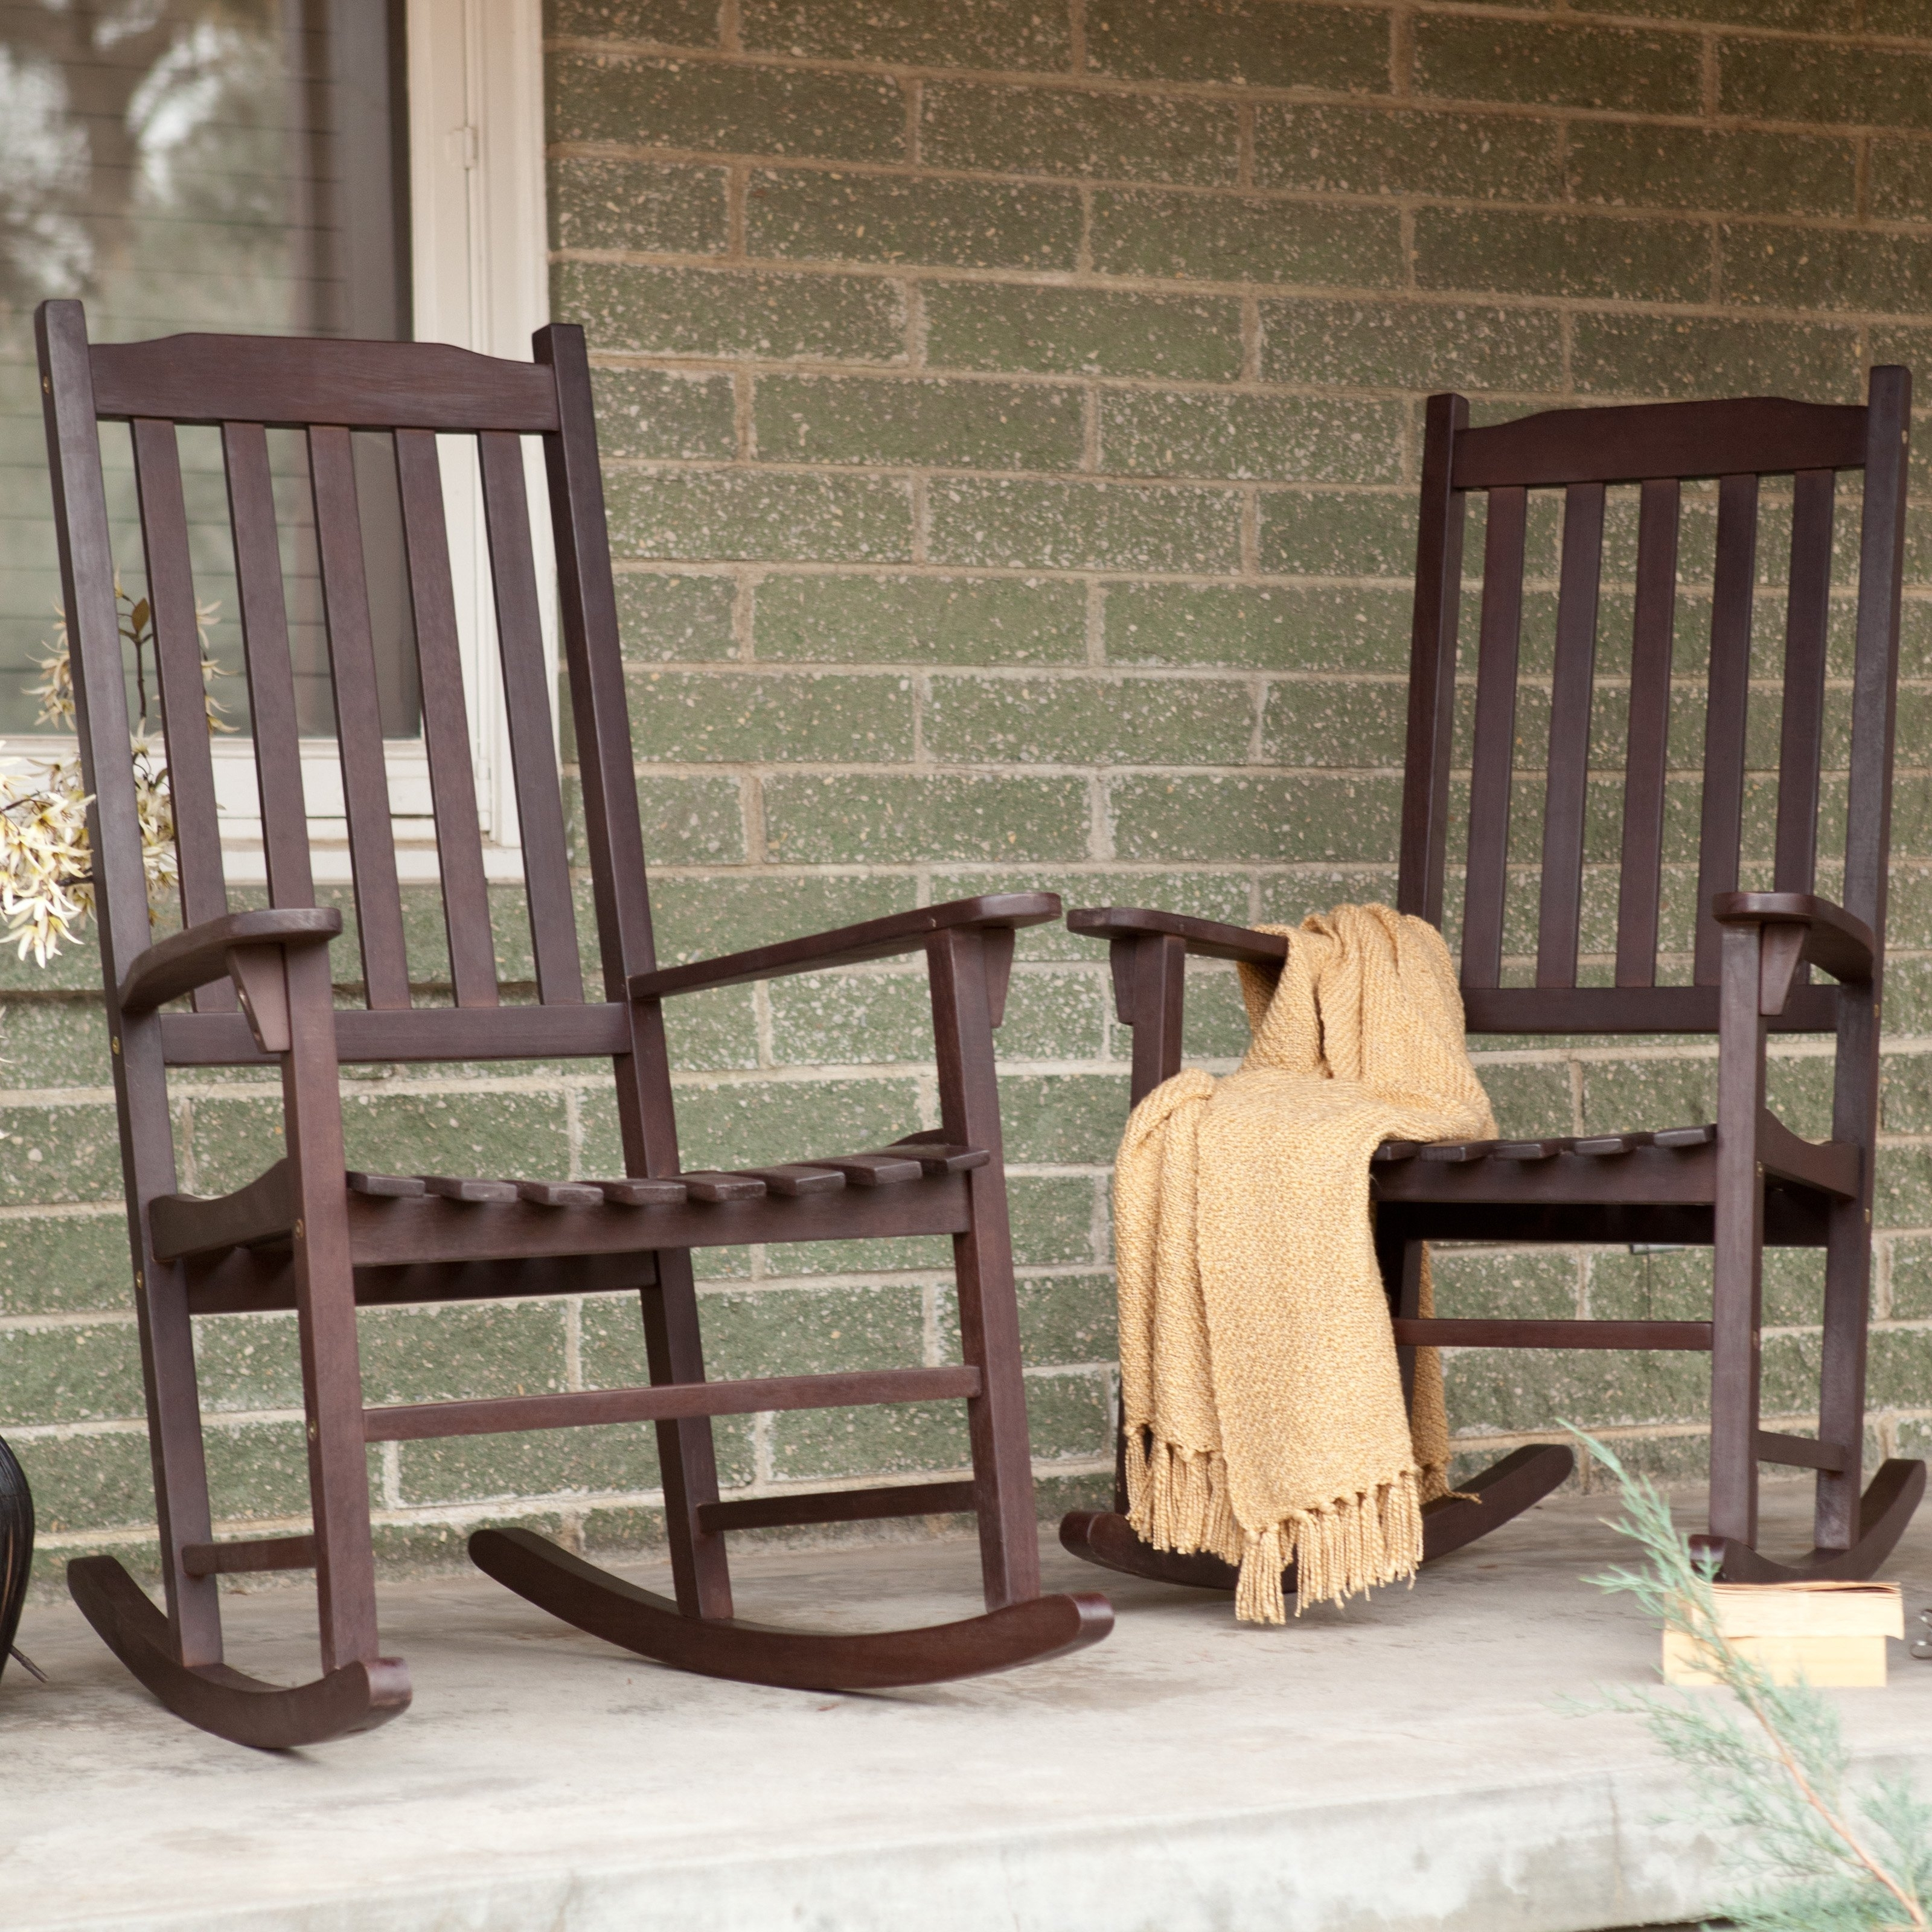 Coral Coast Indoor/outdoor Mission Slat Rocking Chairs – Dark Brown Intended For Newest Unique Outdoor Rocking Chairs (View 4 of 15)